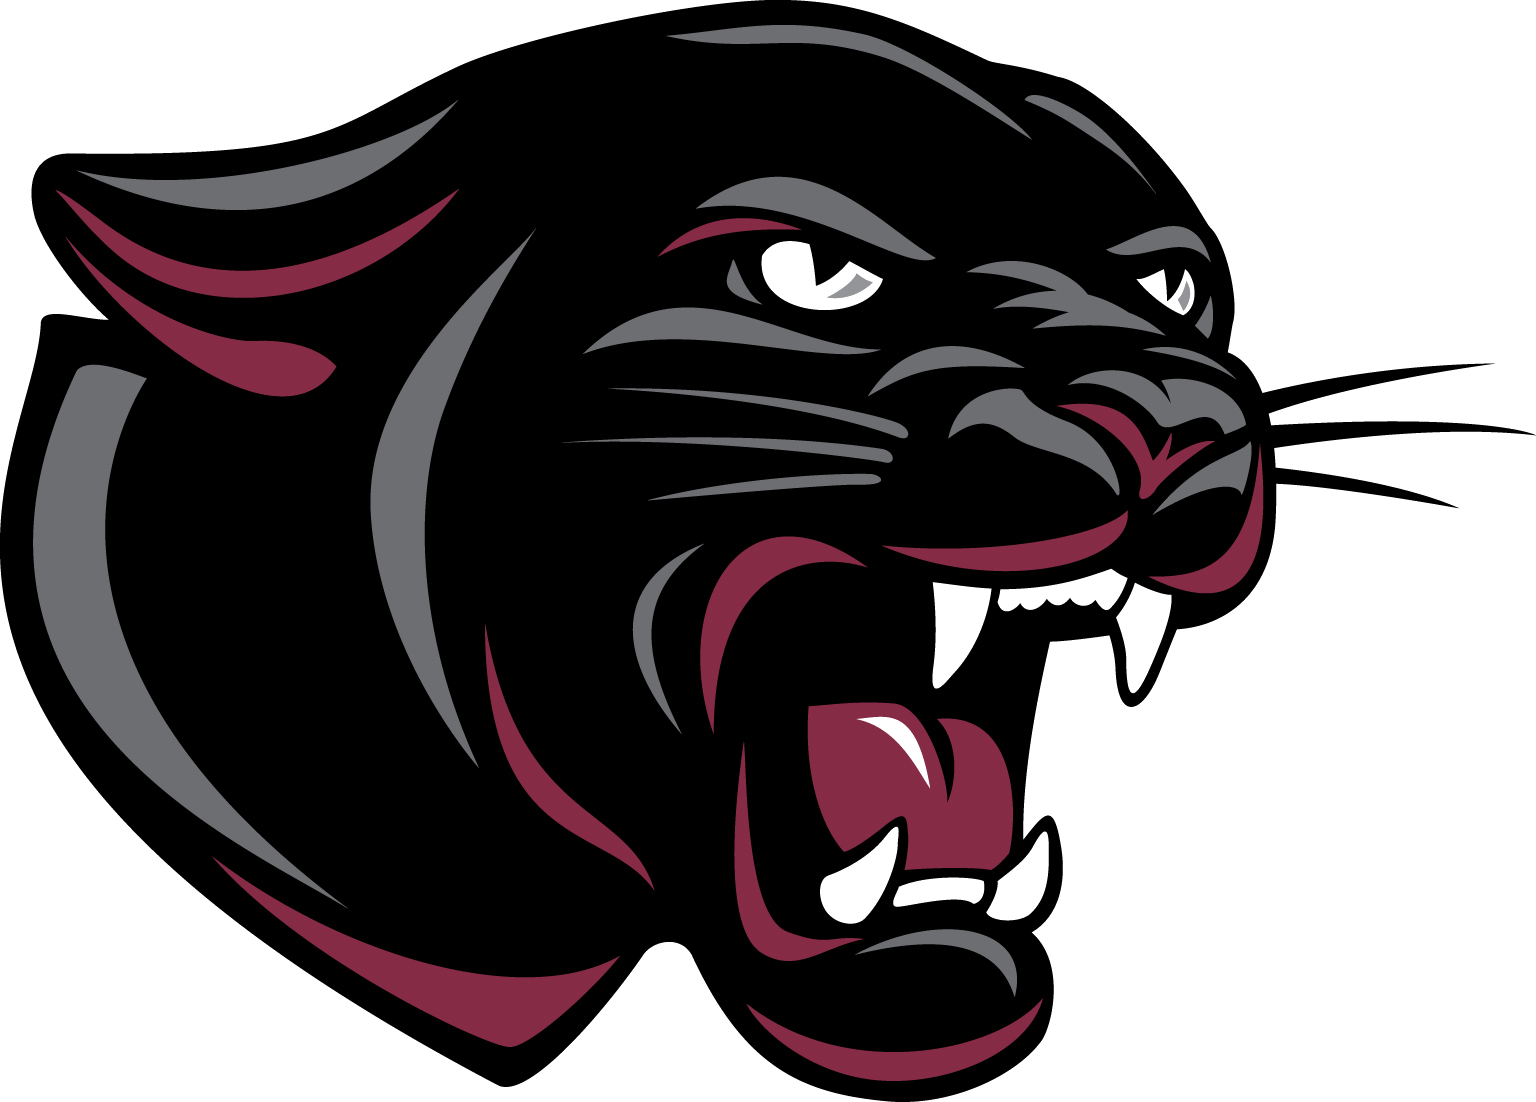 School Permian Panther Cat High Logo Mascot PNG Image